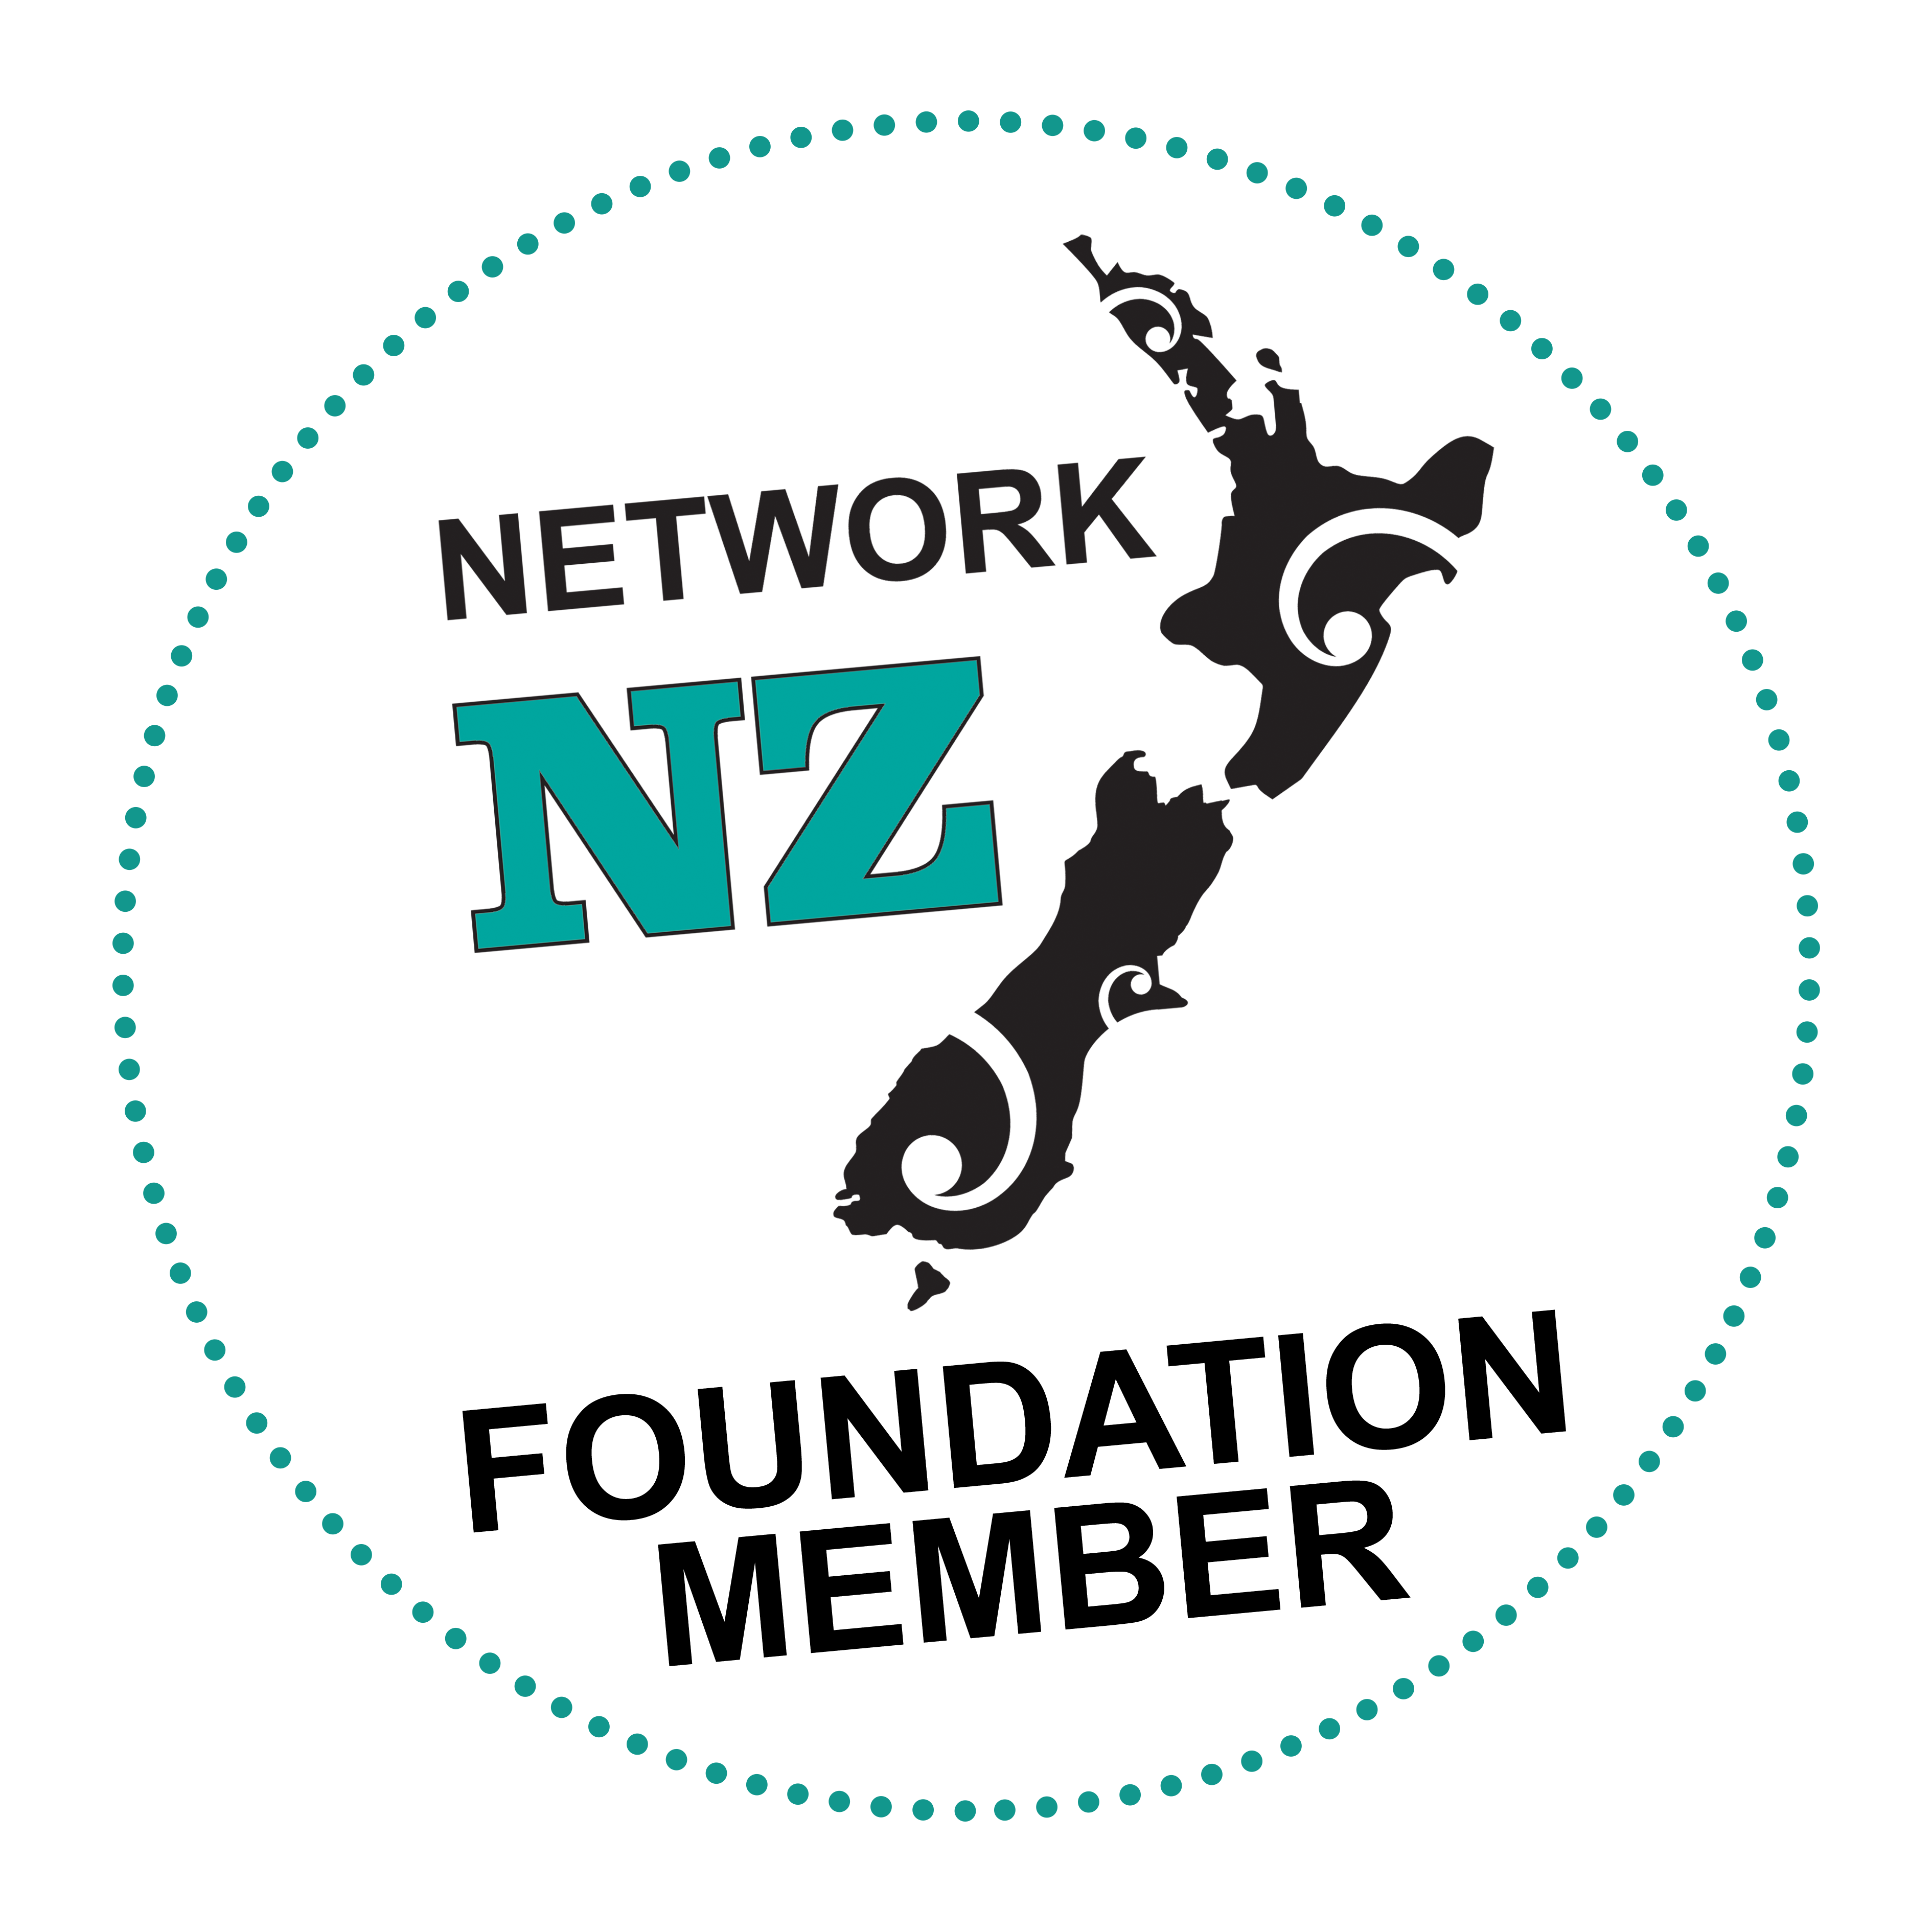 Network_NZ_Foundation_Members_Stamp_Transparent